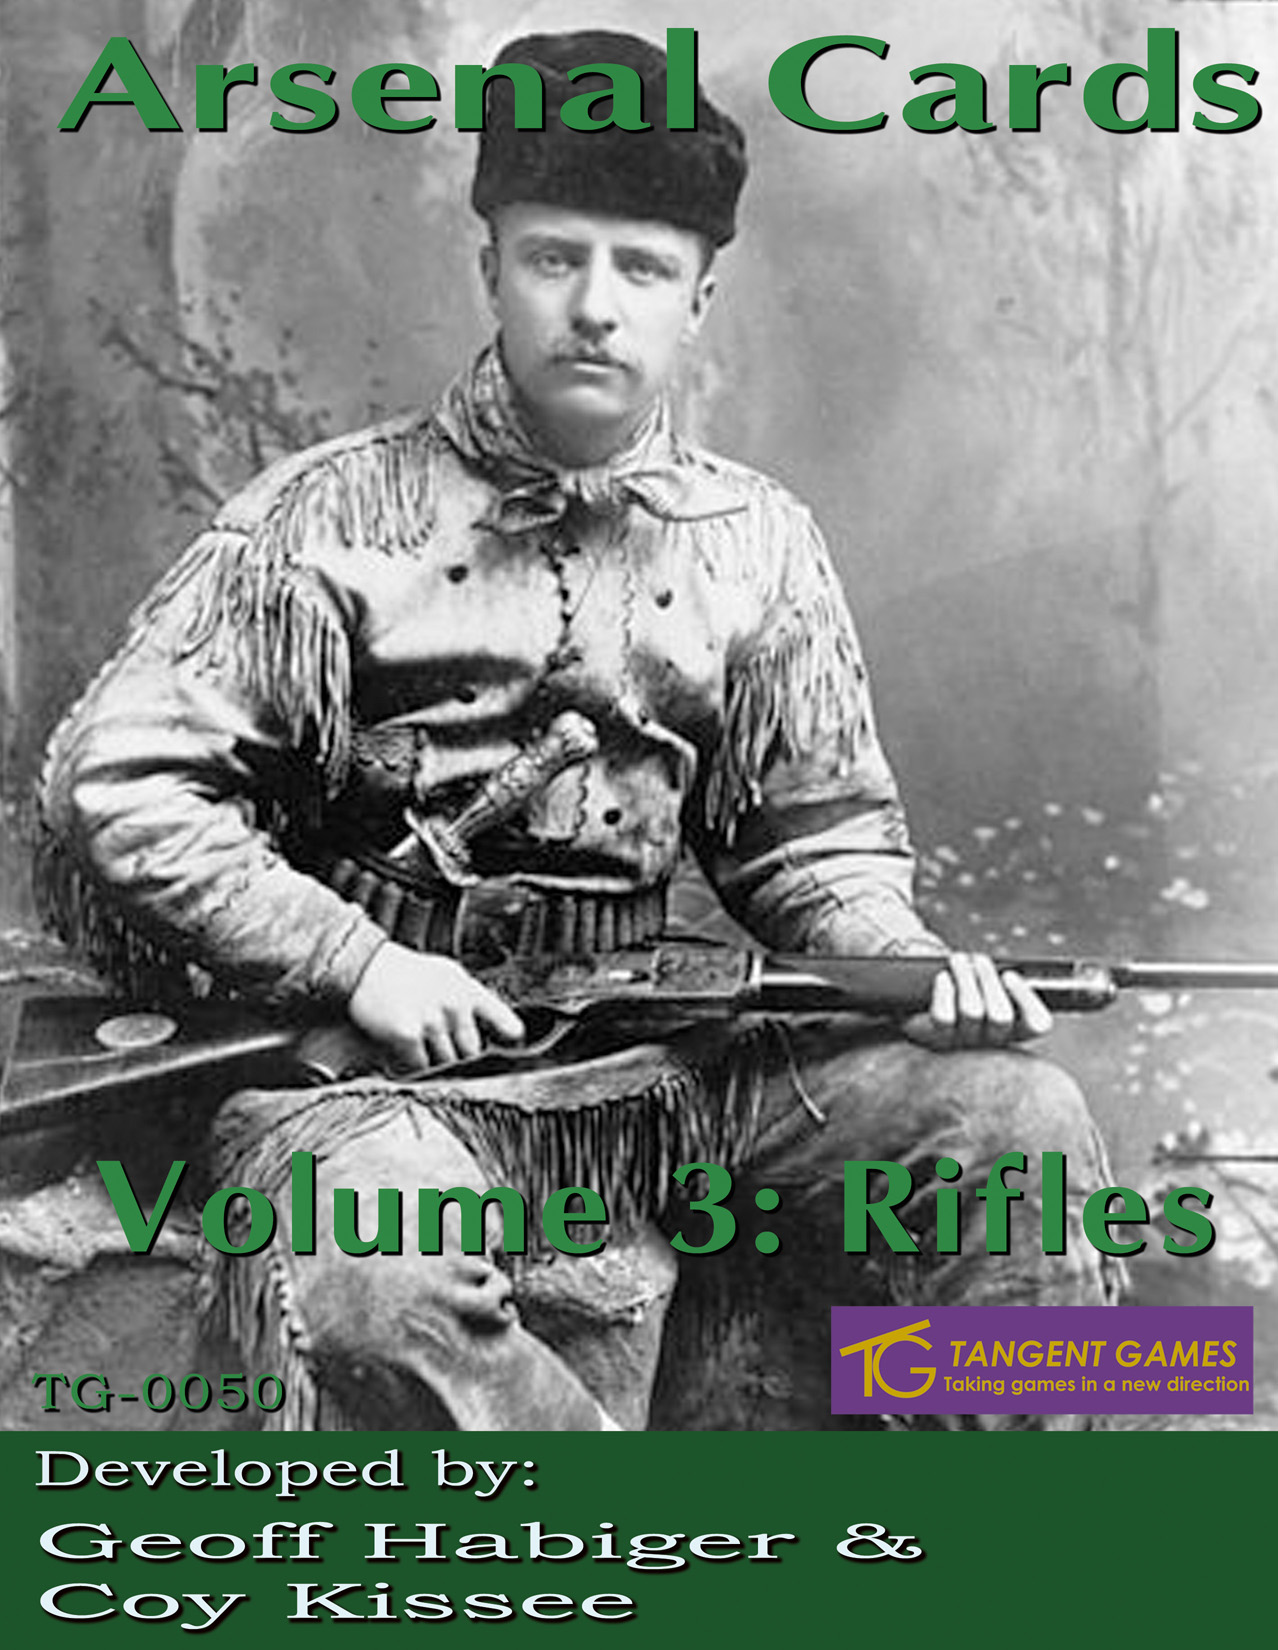 Arssenal Cards: Vol 3: Rifles